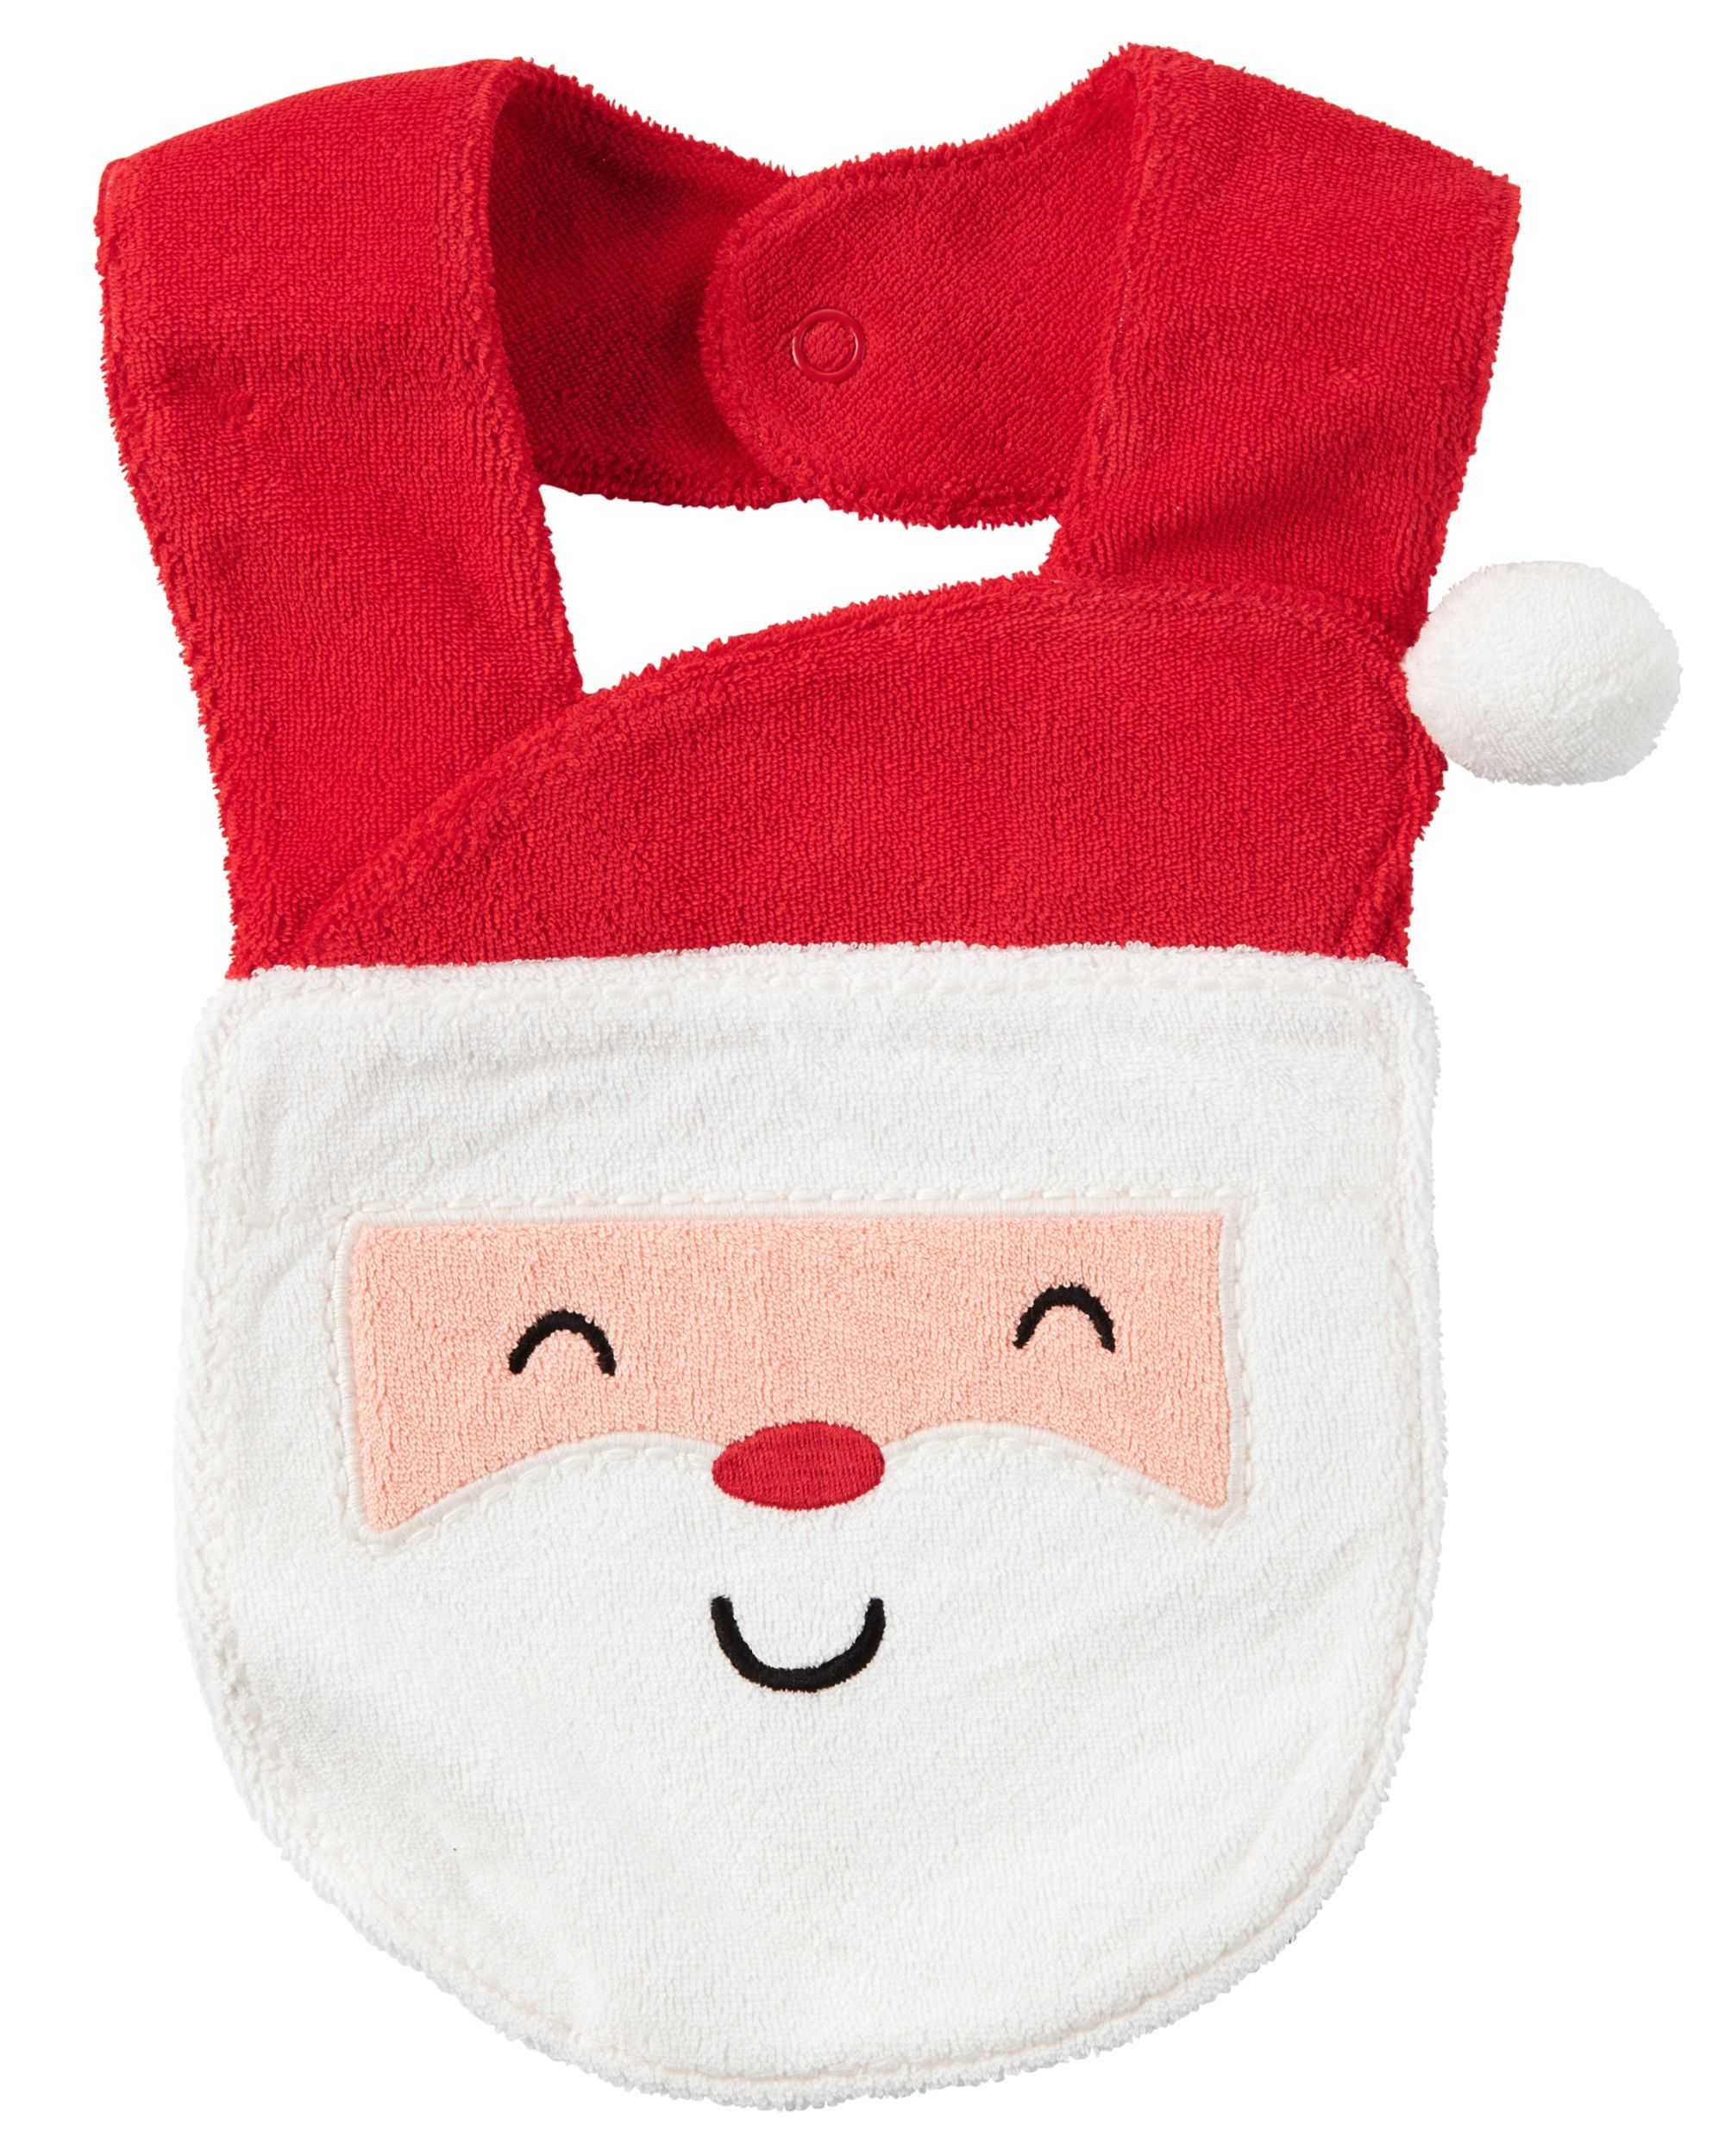 1ee64796f Keeping feeding time playful, this absorbent French terry bib features an  easy snap closure and a festive Santa design.